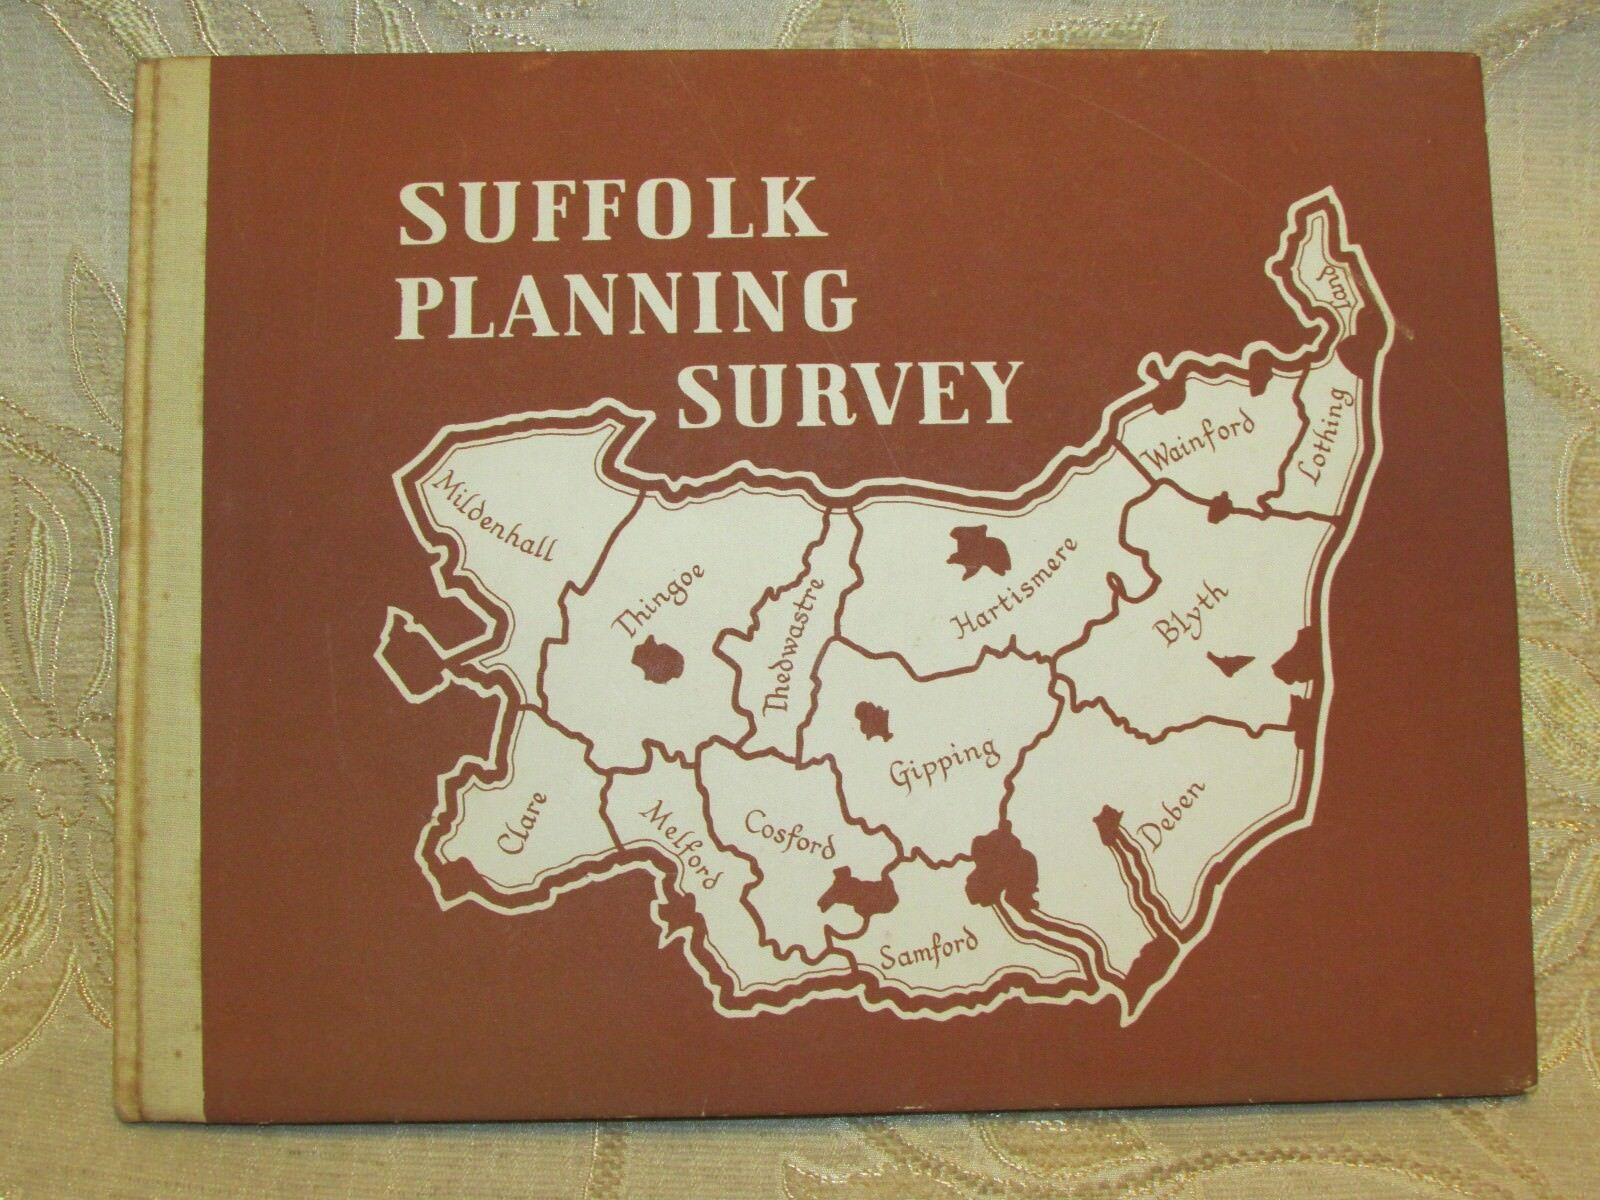 Antique Book Of Suffolk Planning Survey, By T. B. Oxenbury - 1946